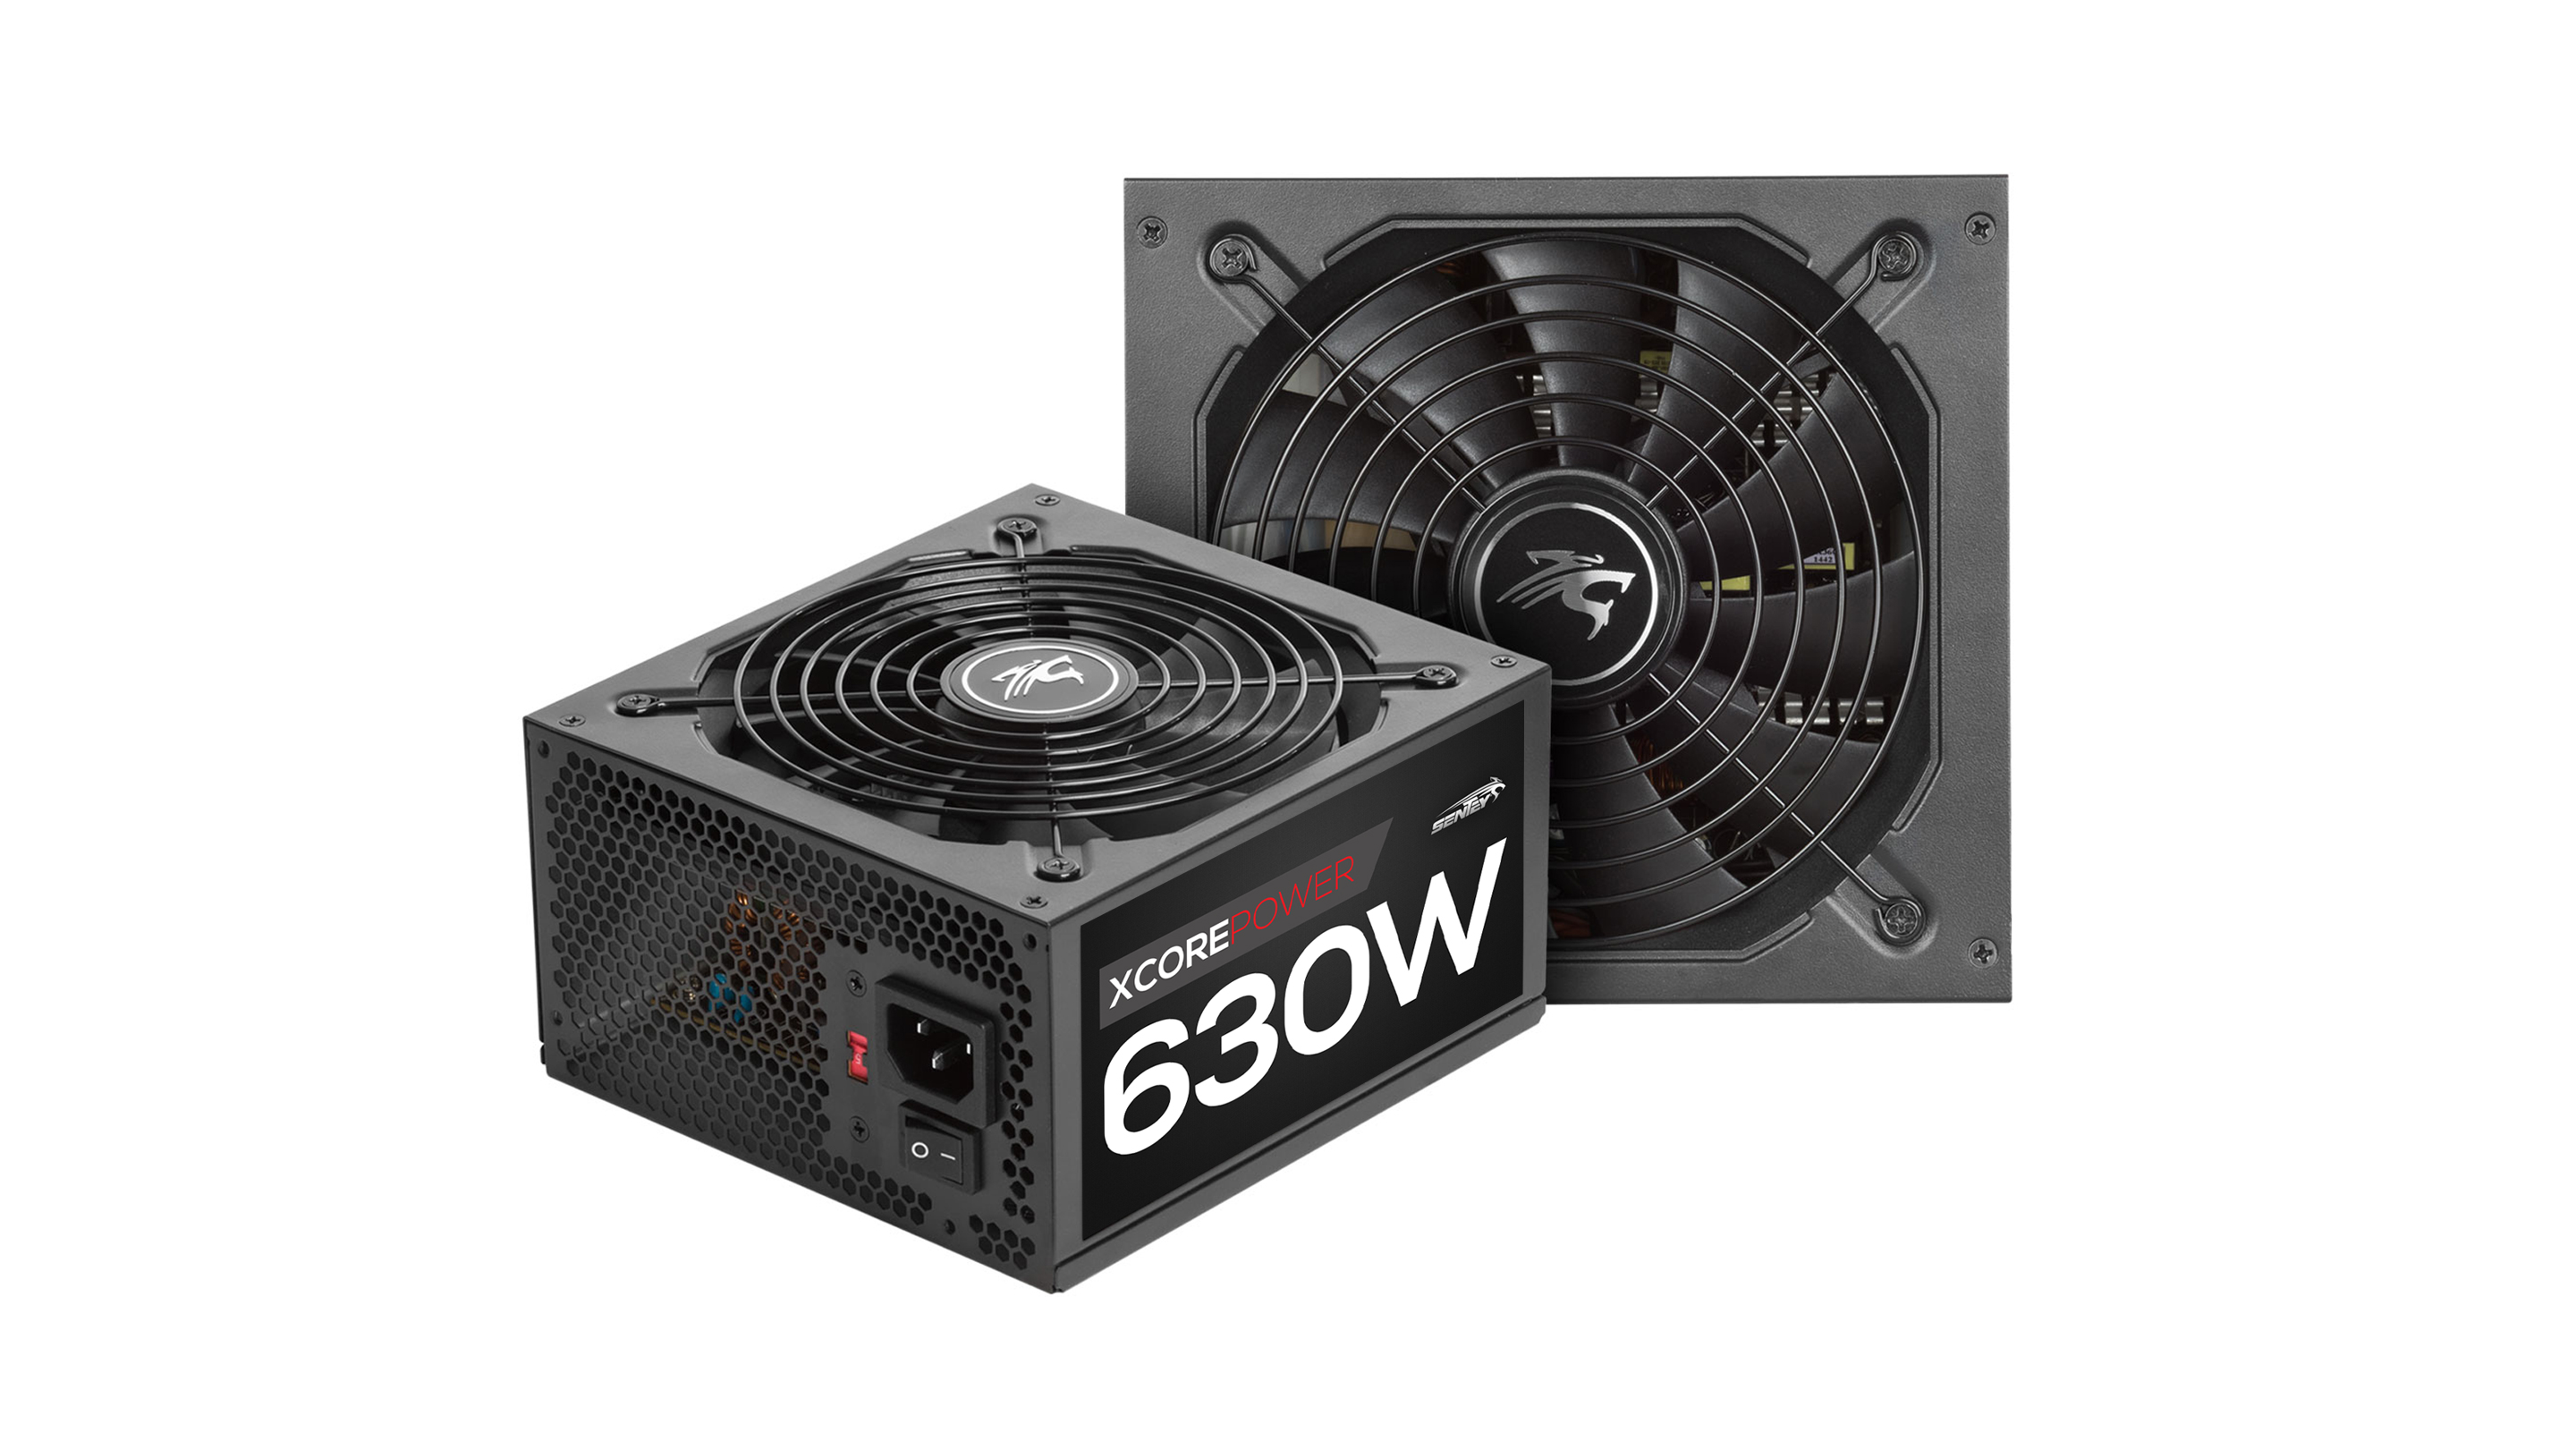 Fuente 630W Sentey extreme core power